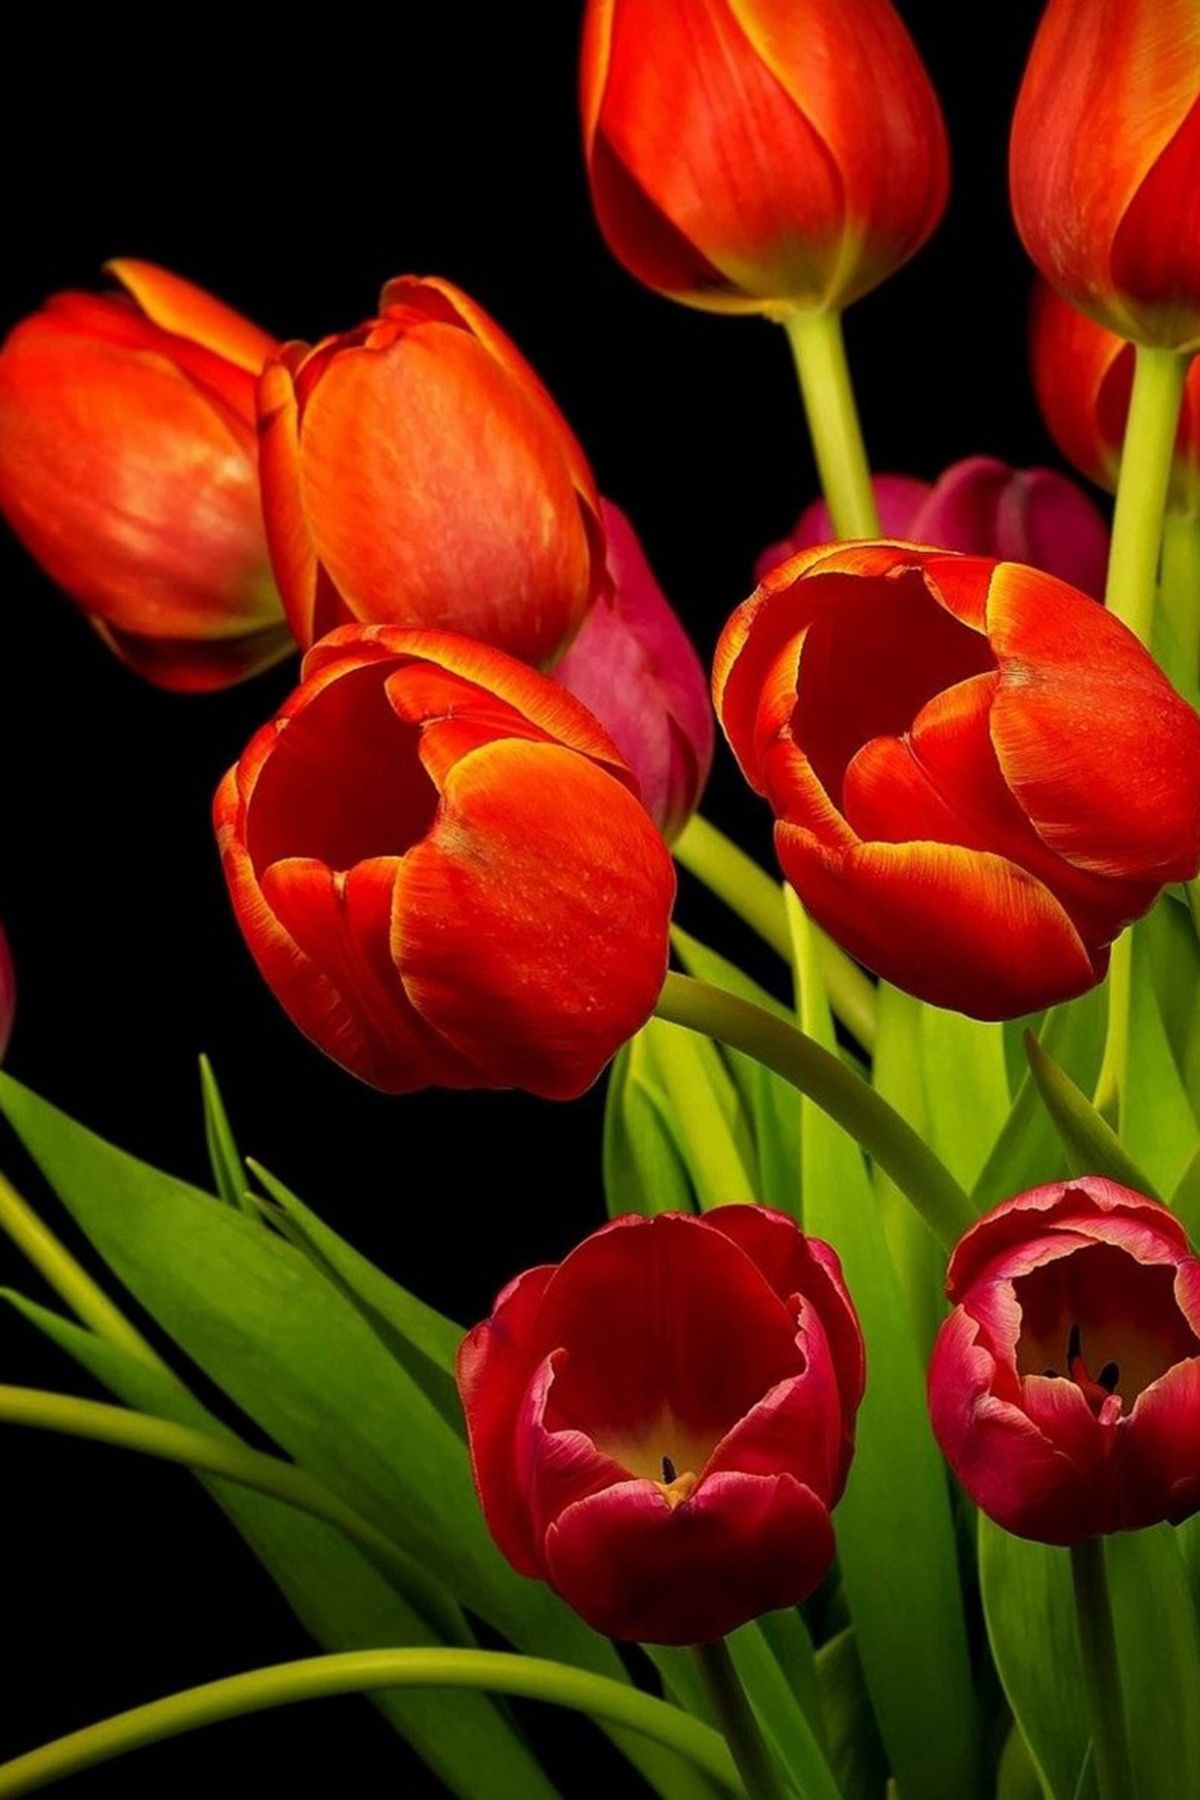 Red Tulip Flowers And Black Background Hd Mobile Wallpaper P Red Tulip Flowers And Black Background Hd Mobile Wall Red Tulips Qhd Wallpaper Flower Backgrounds